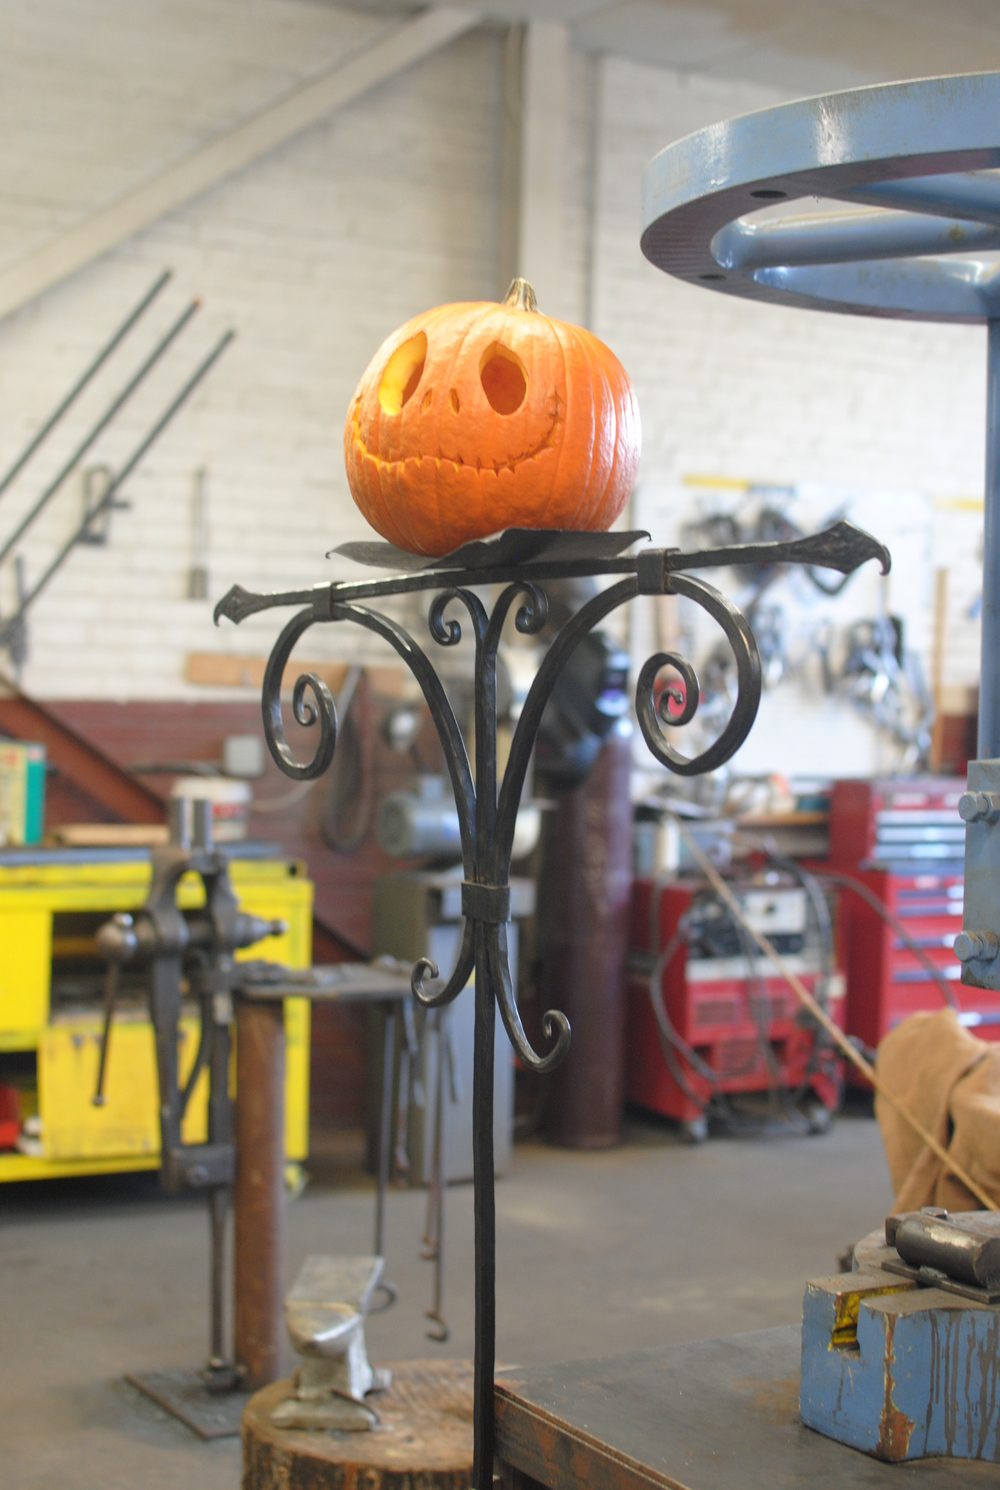 Pumpkin-stand-PH2013.JPG